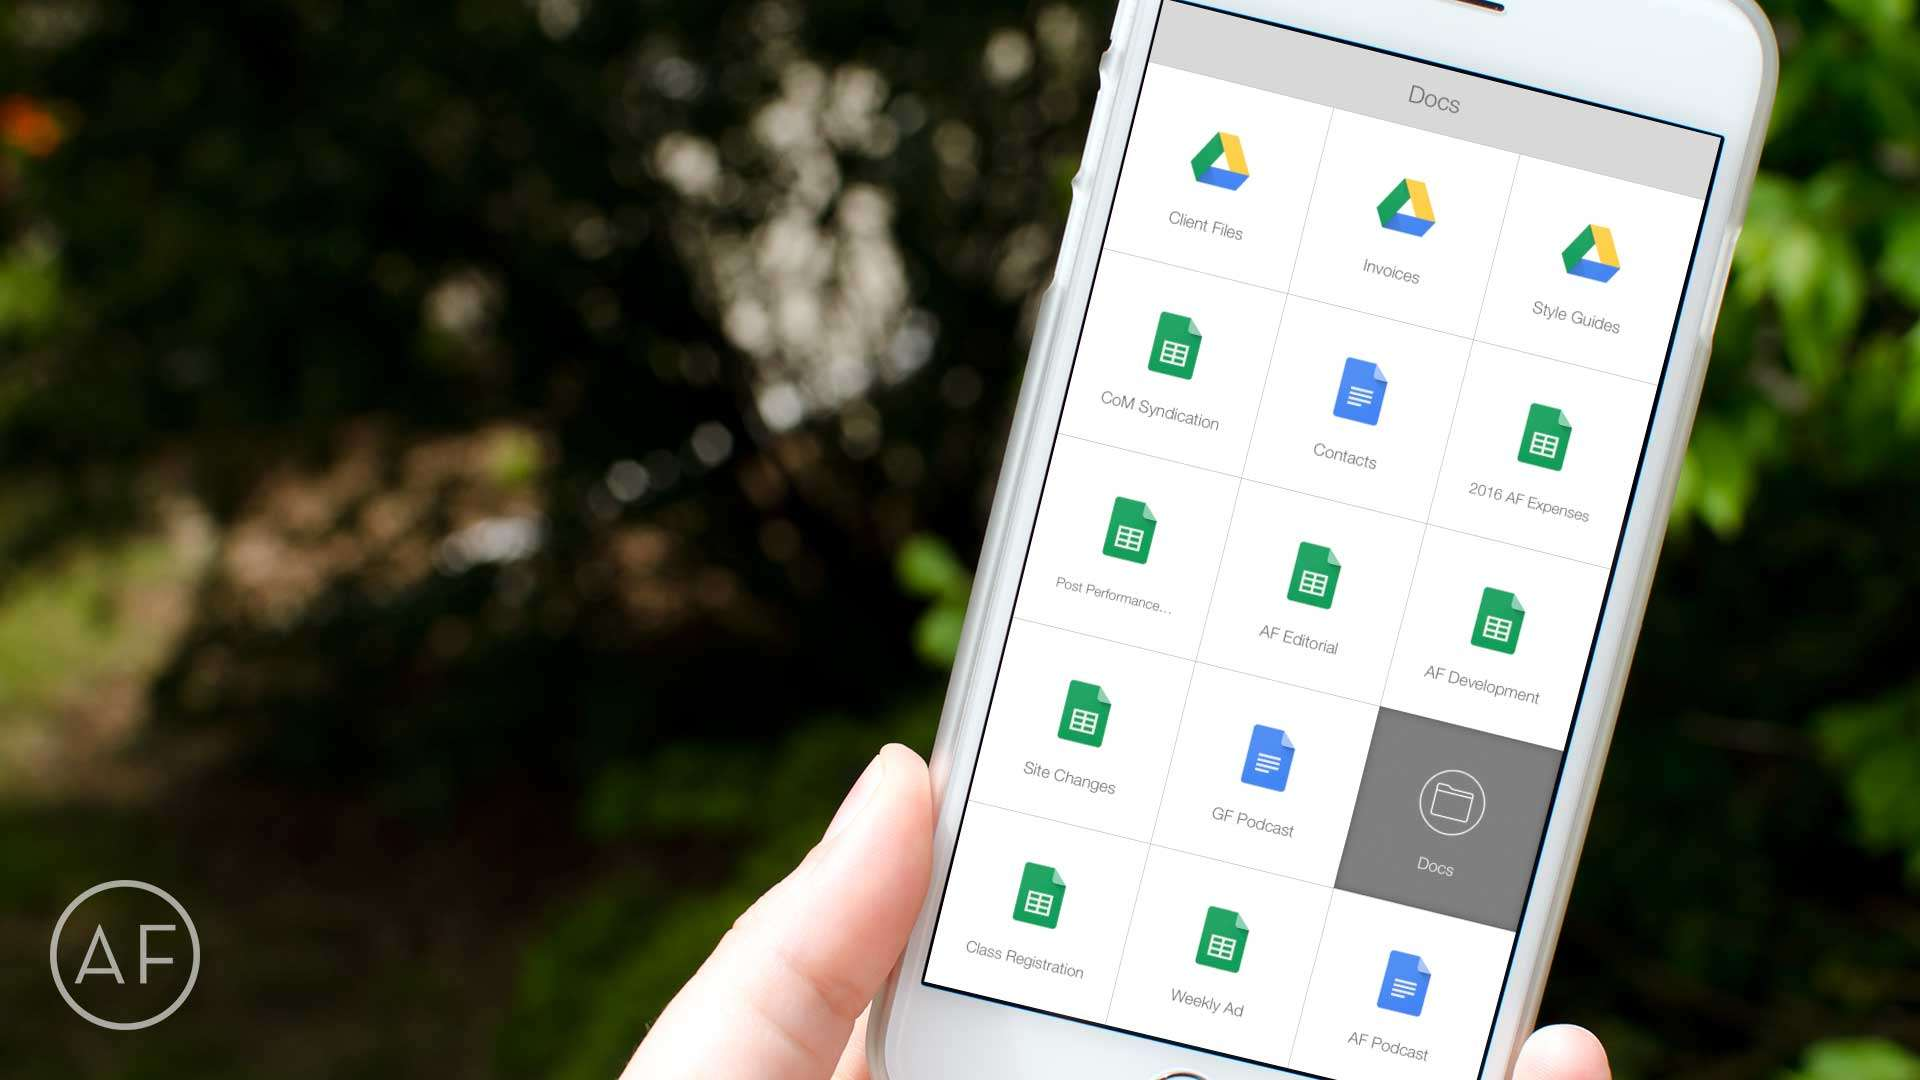 Want even faster access to your most-used Google Drive files? Let Launch Center Pro do the heavy lifting!